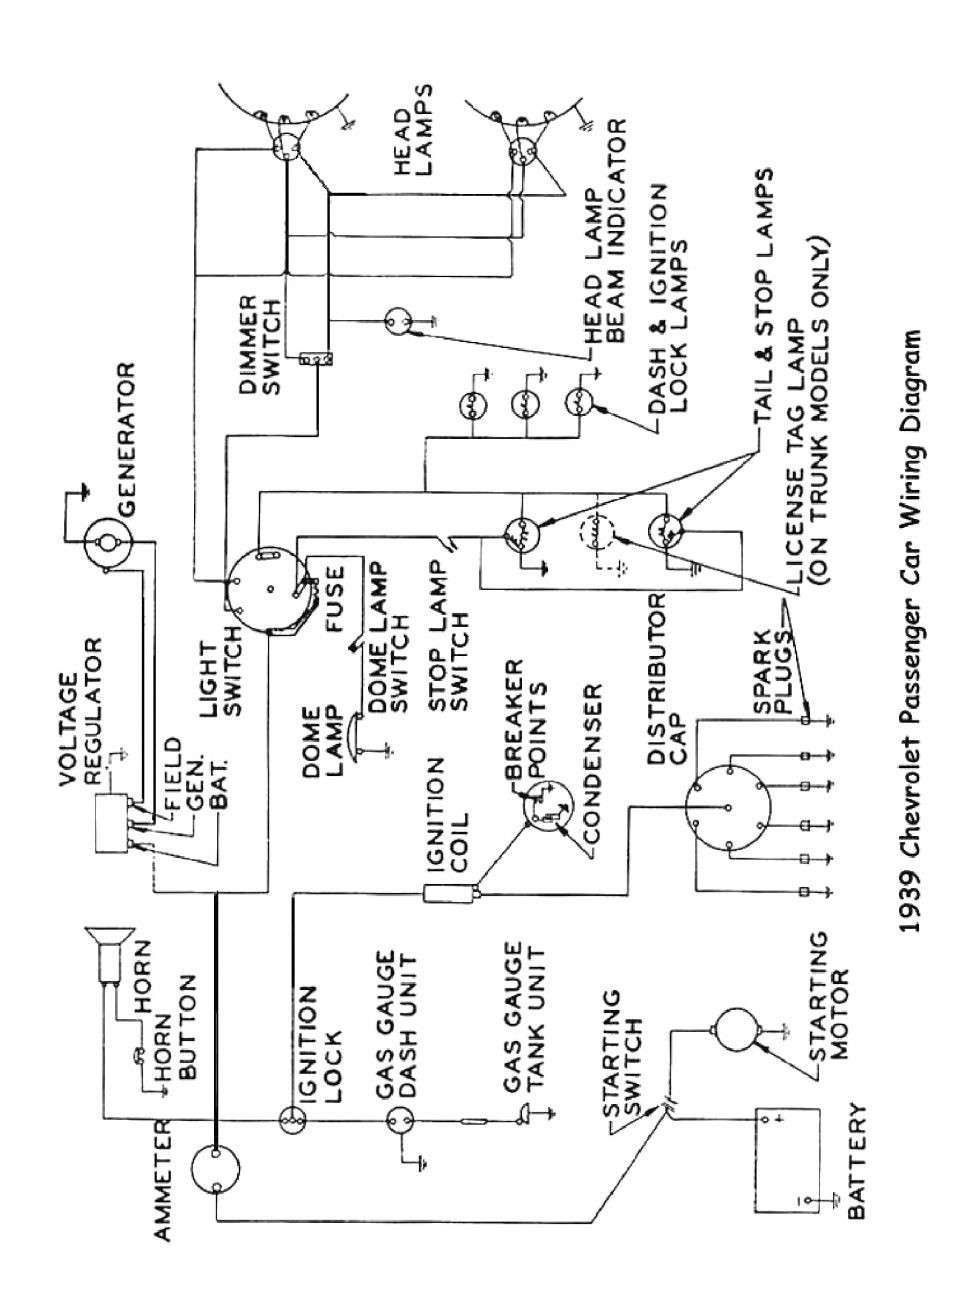 Wiring Diagram Outlets Beautiful Wiring Diagram Outlets Splendid Line Wiring Diagram Help Signalsbra Electrical Wiring Diagram Remote Car Starter Car Starter